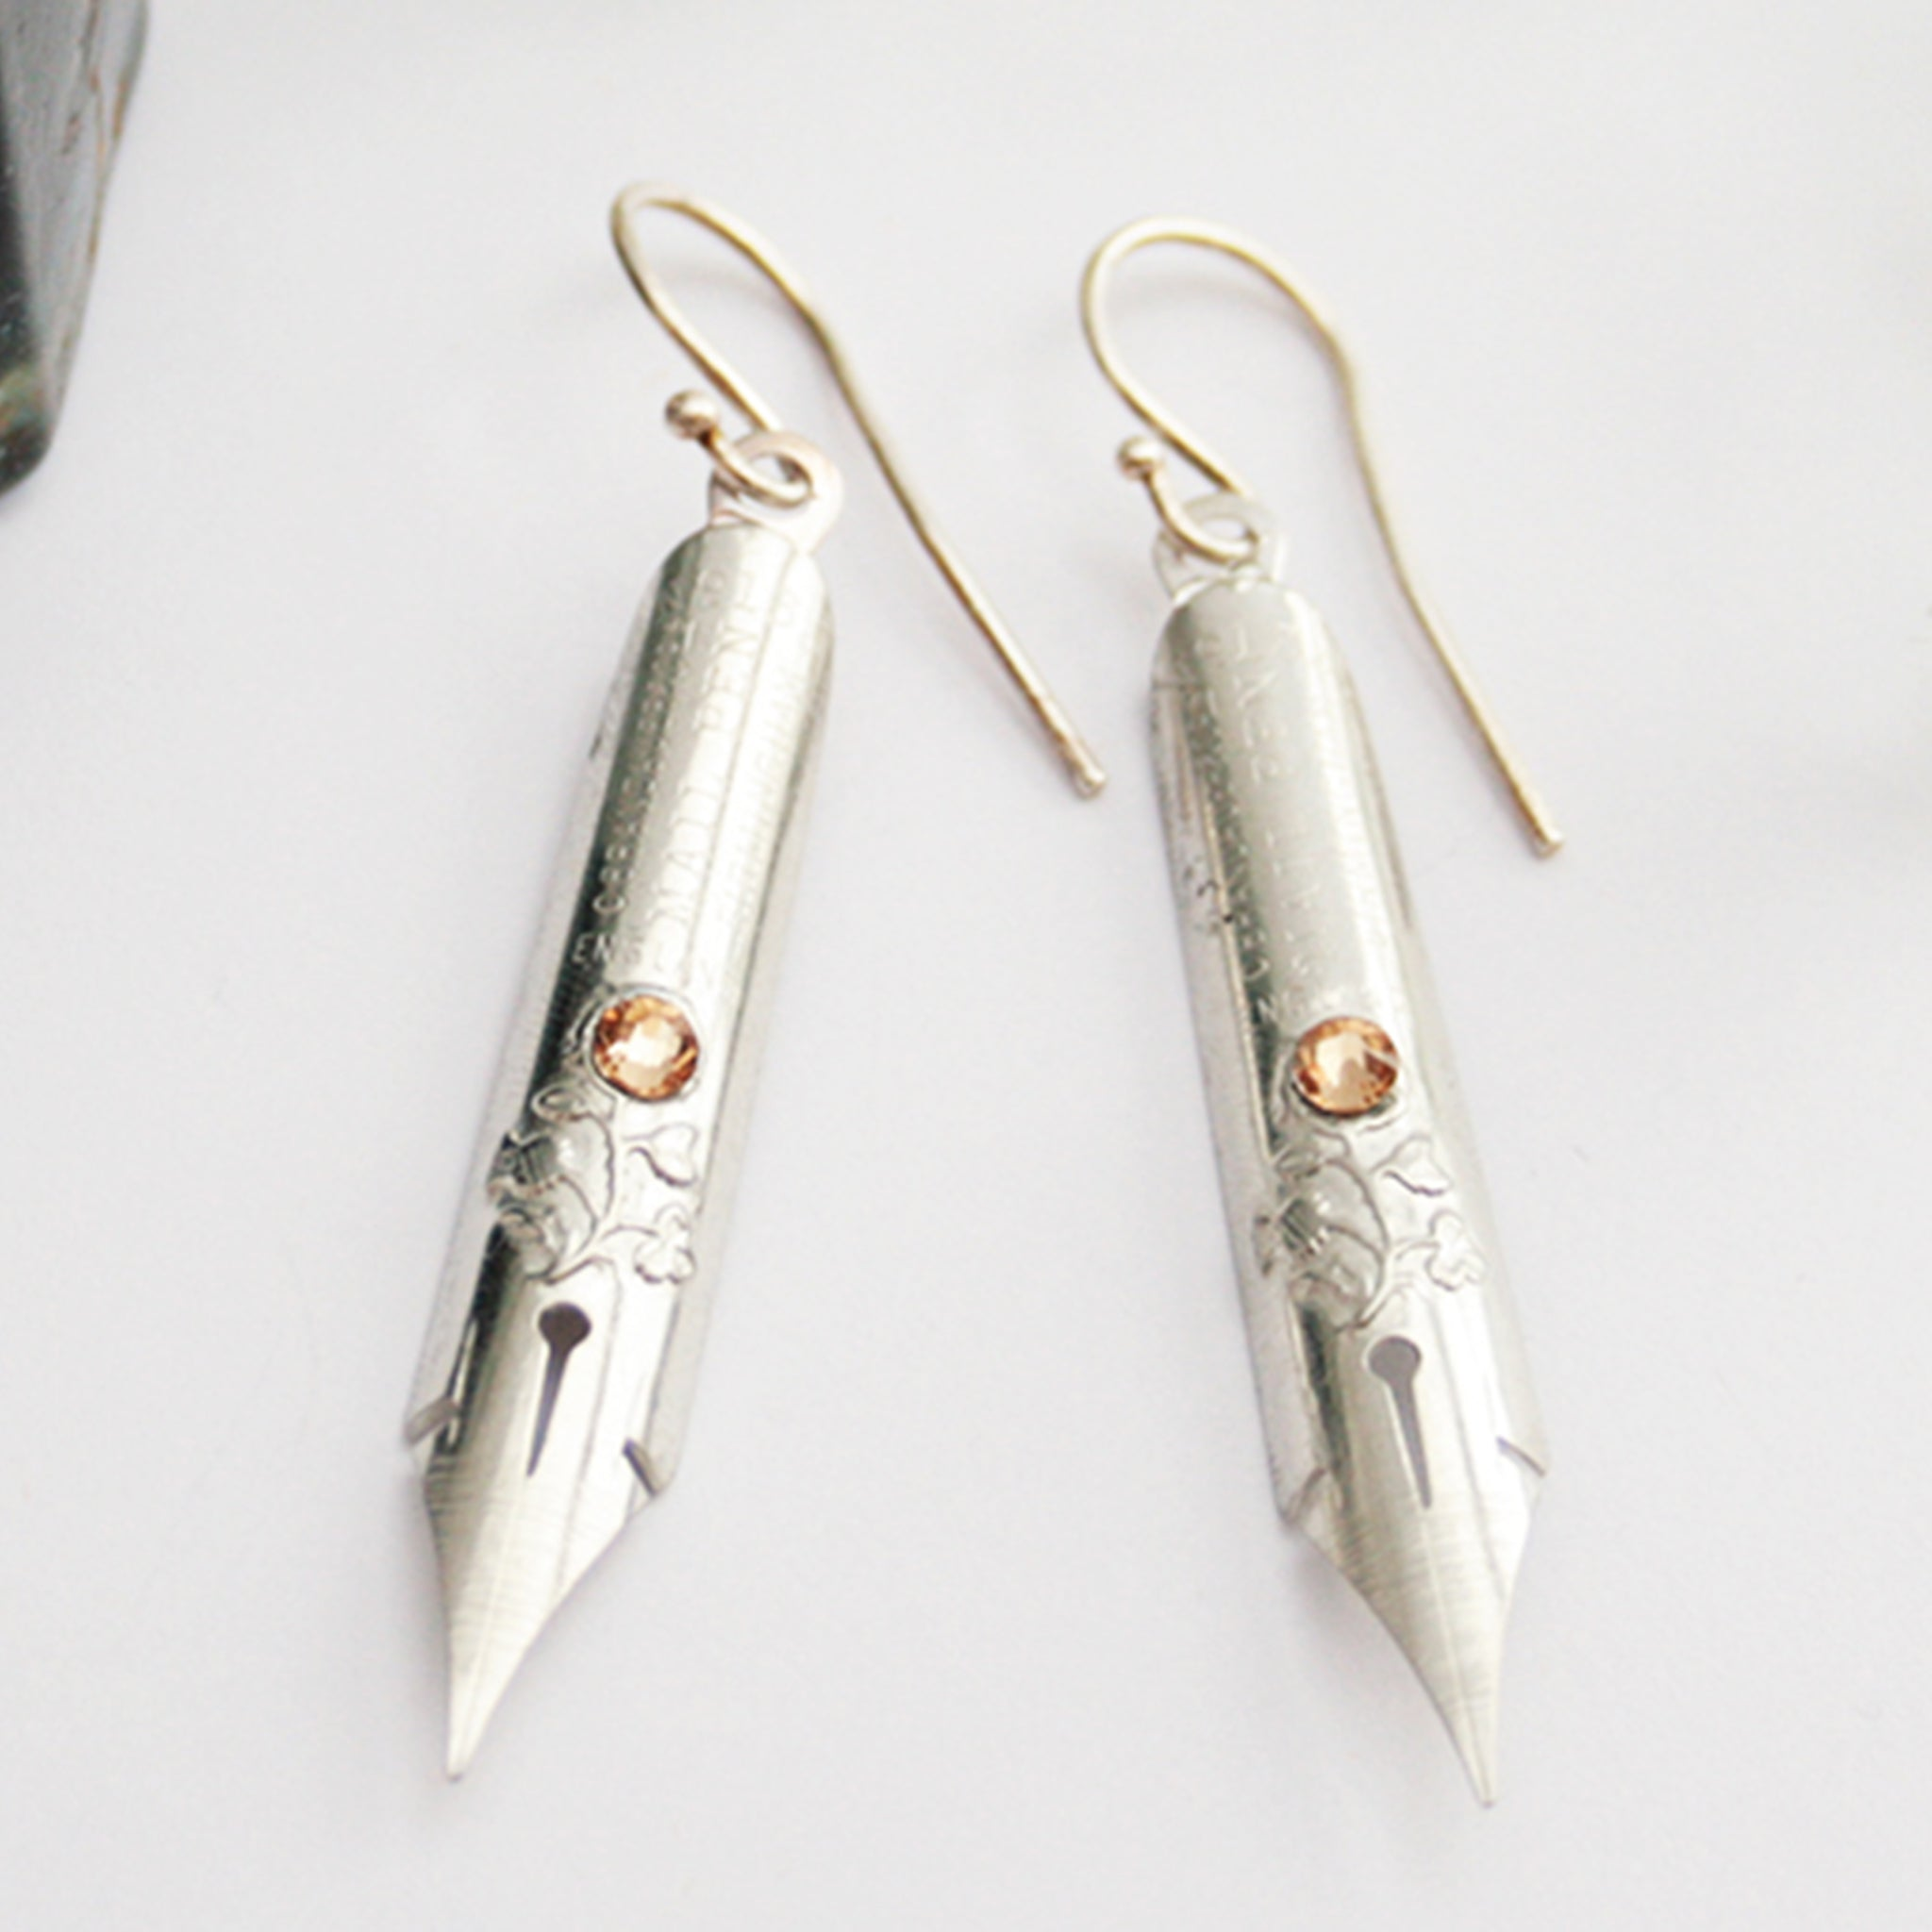 Topaz Birthstone Earrings made of antique Silver Pen Nibs